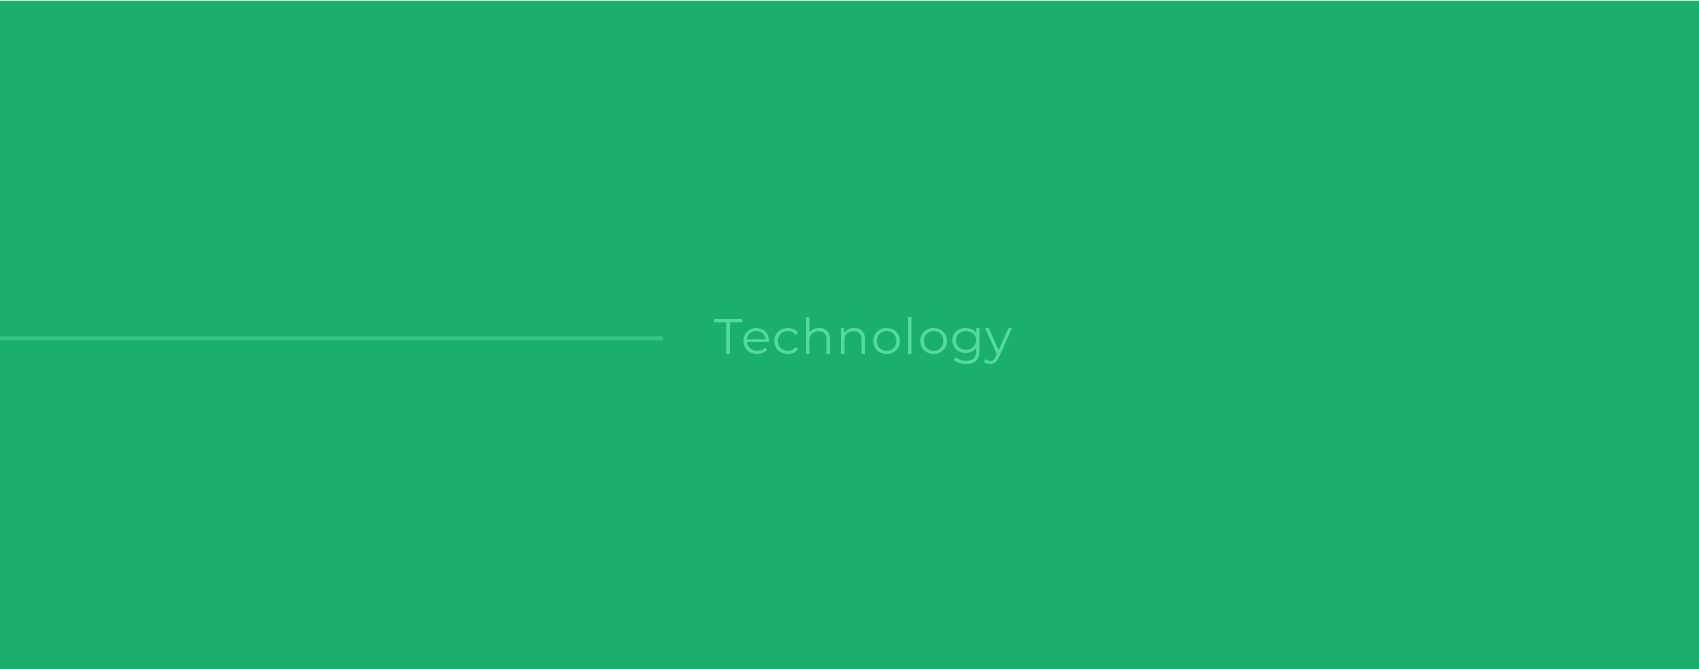 2019News_CategoryHeaders-Technology